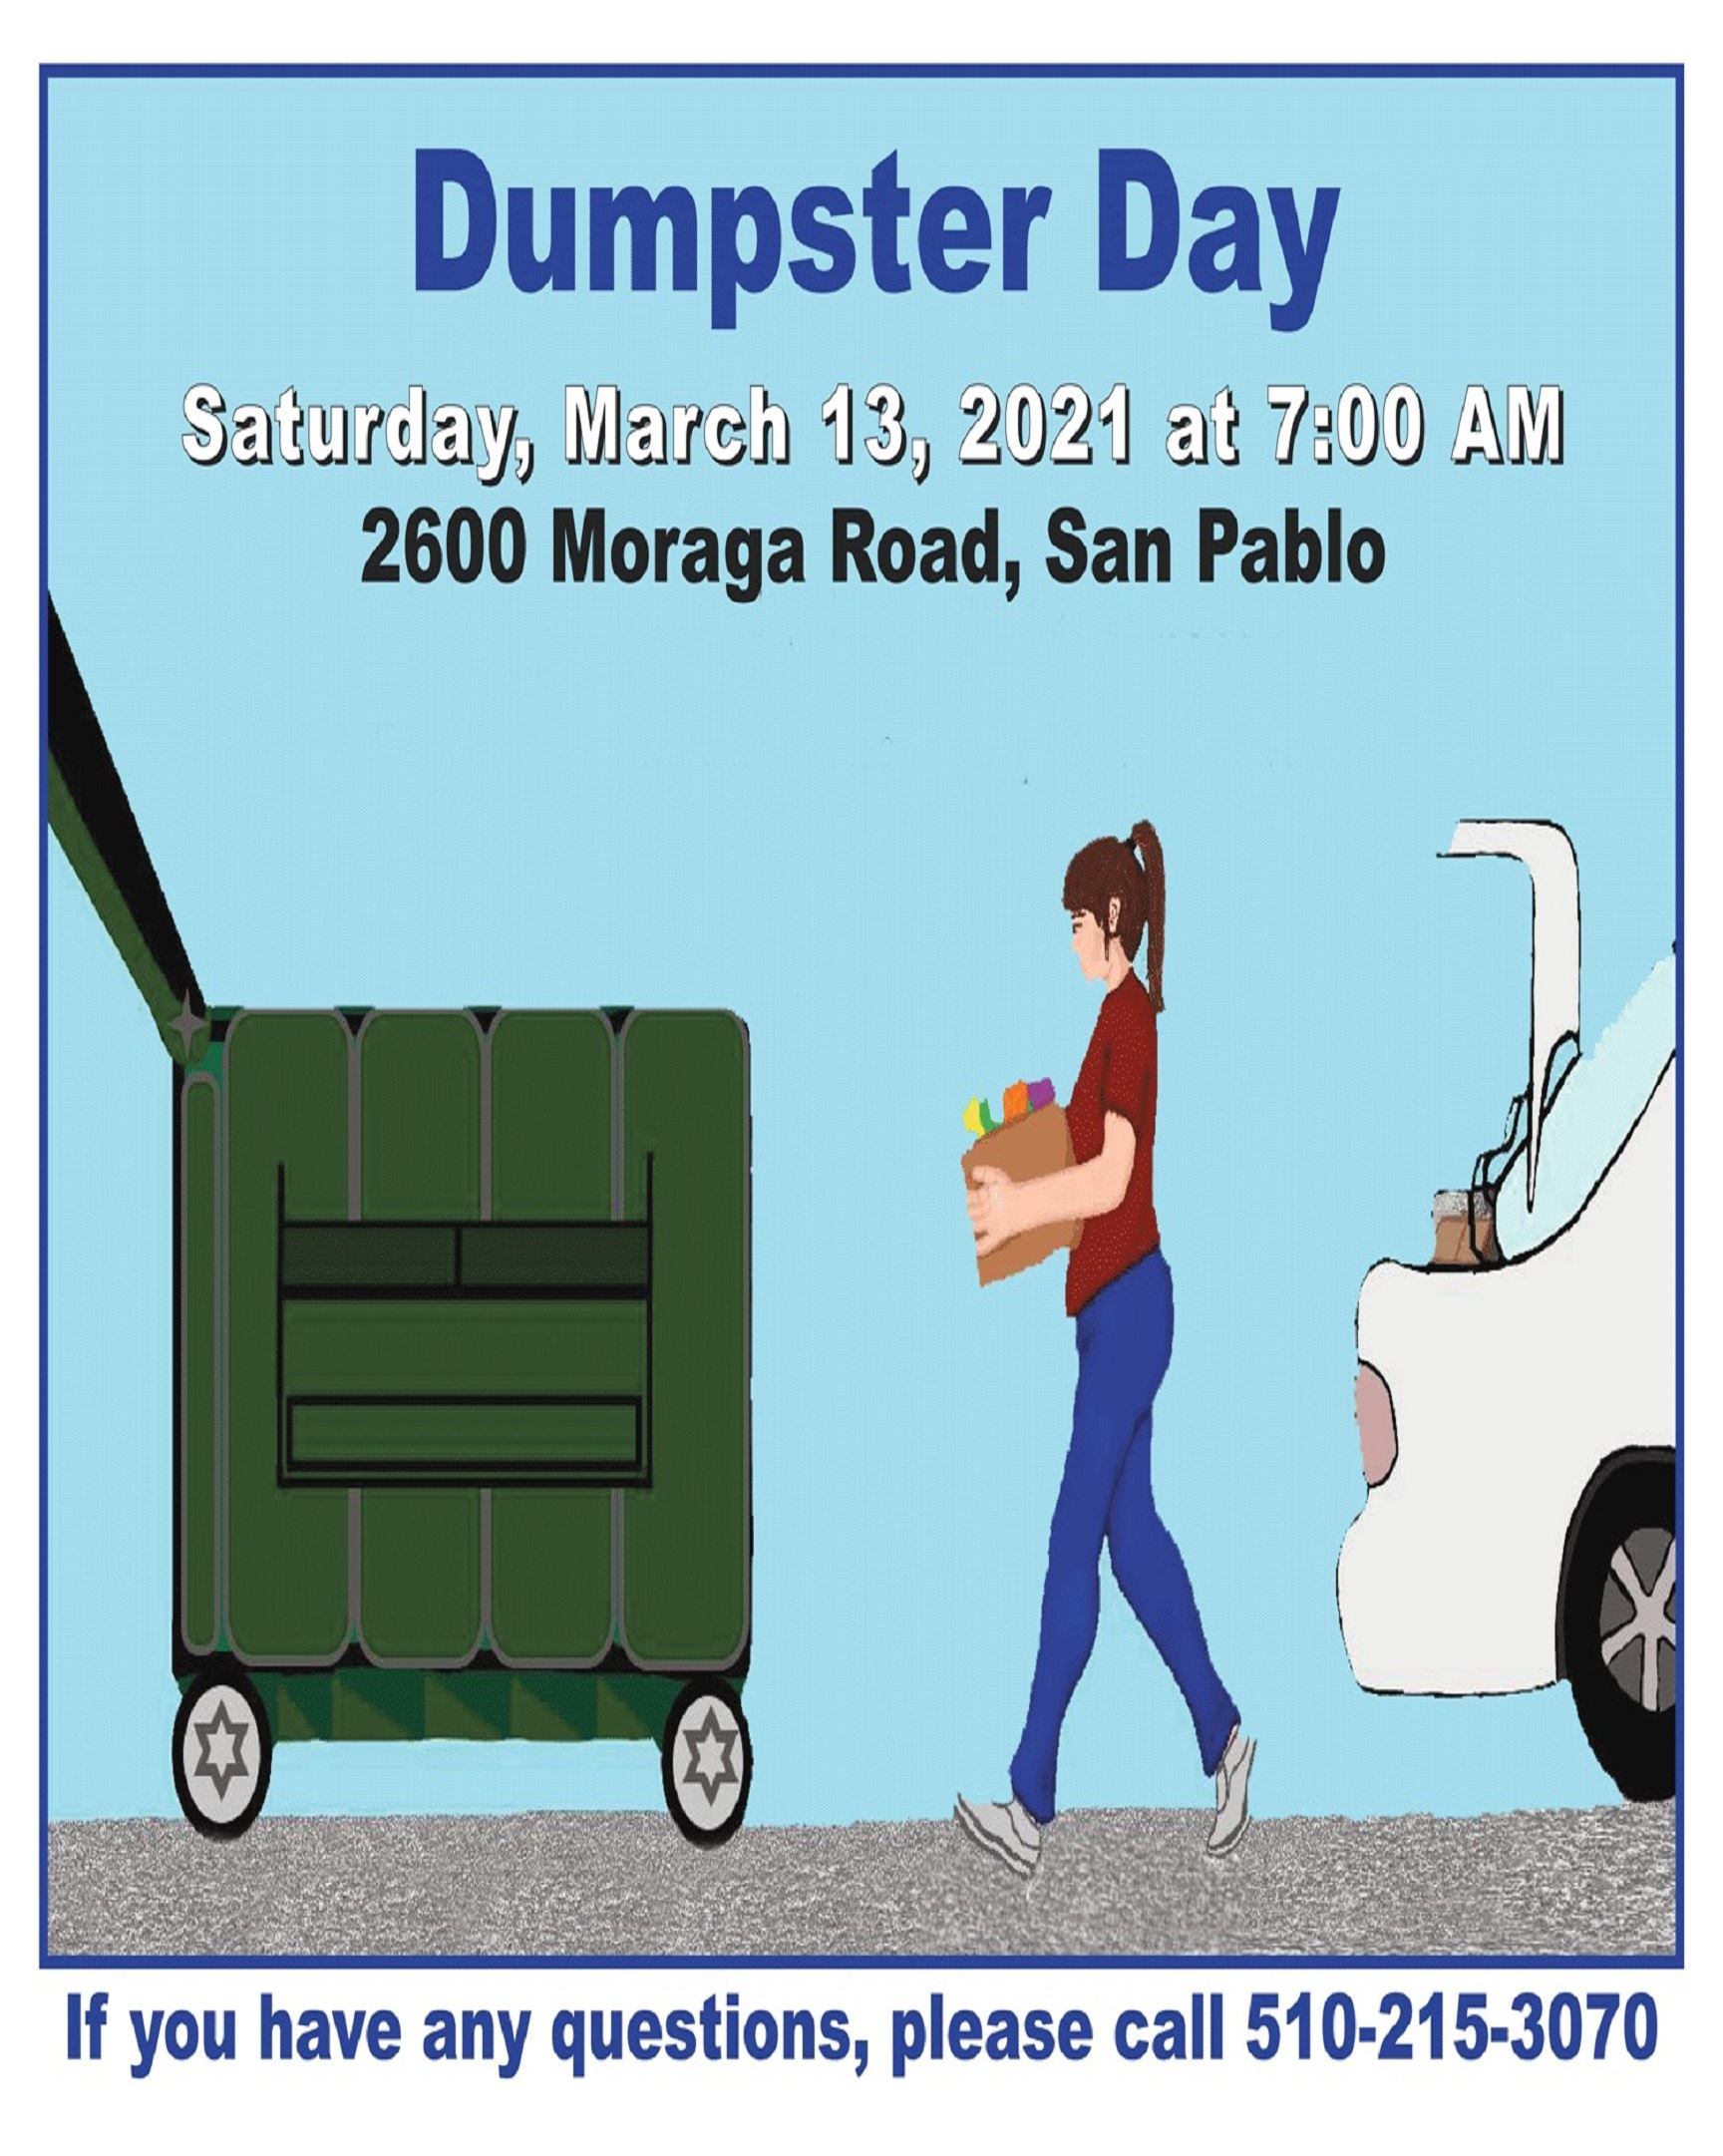 Dumpster Day March 13, 2021